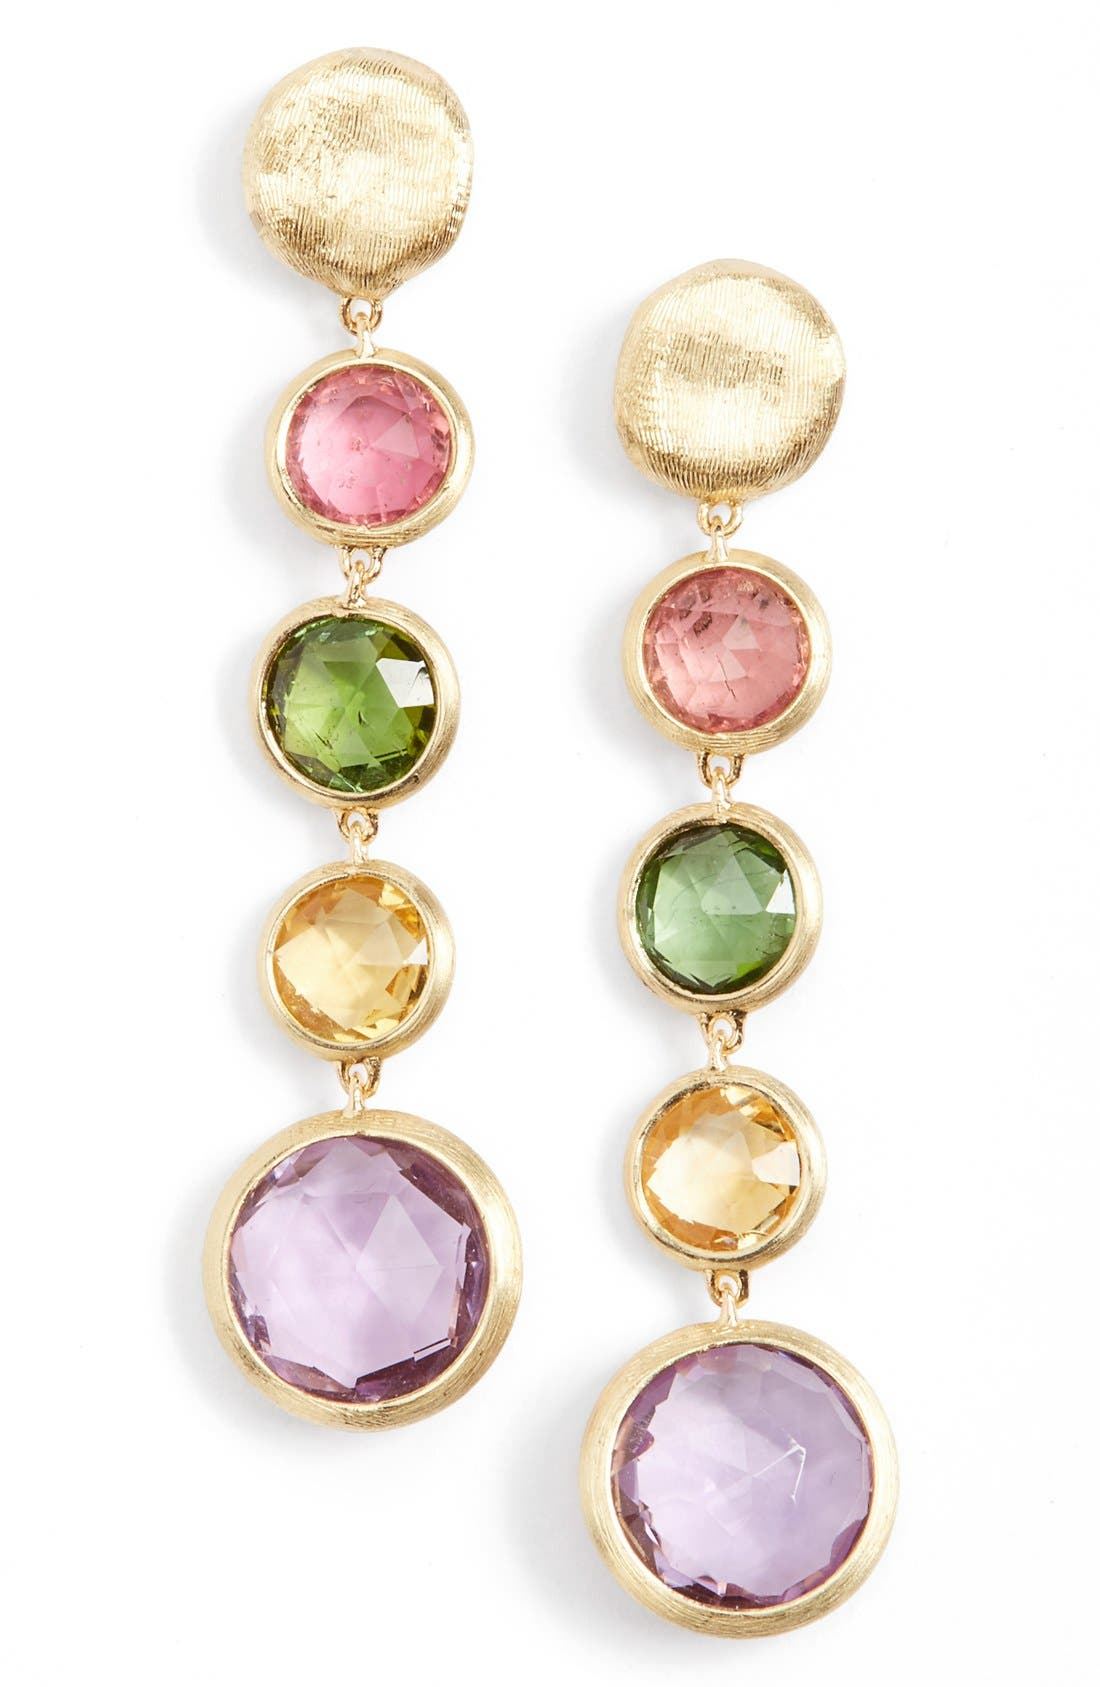 MARCO BICEGO Jaipur Semiprecious Stone Linear Earrings